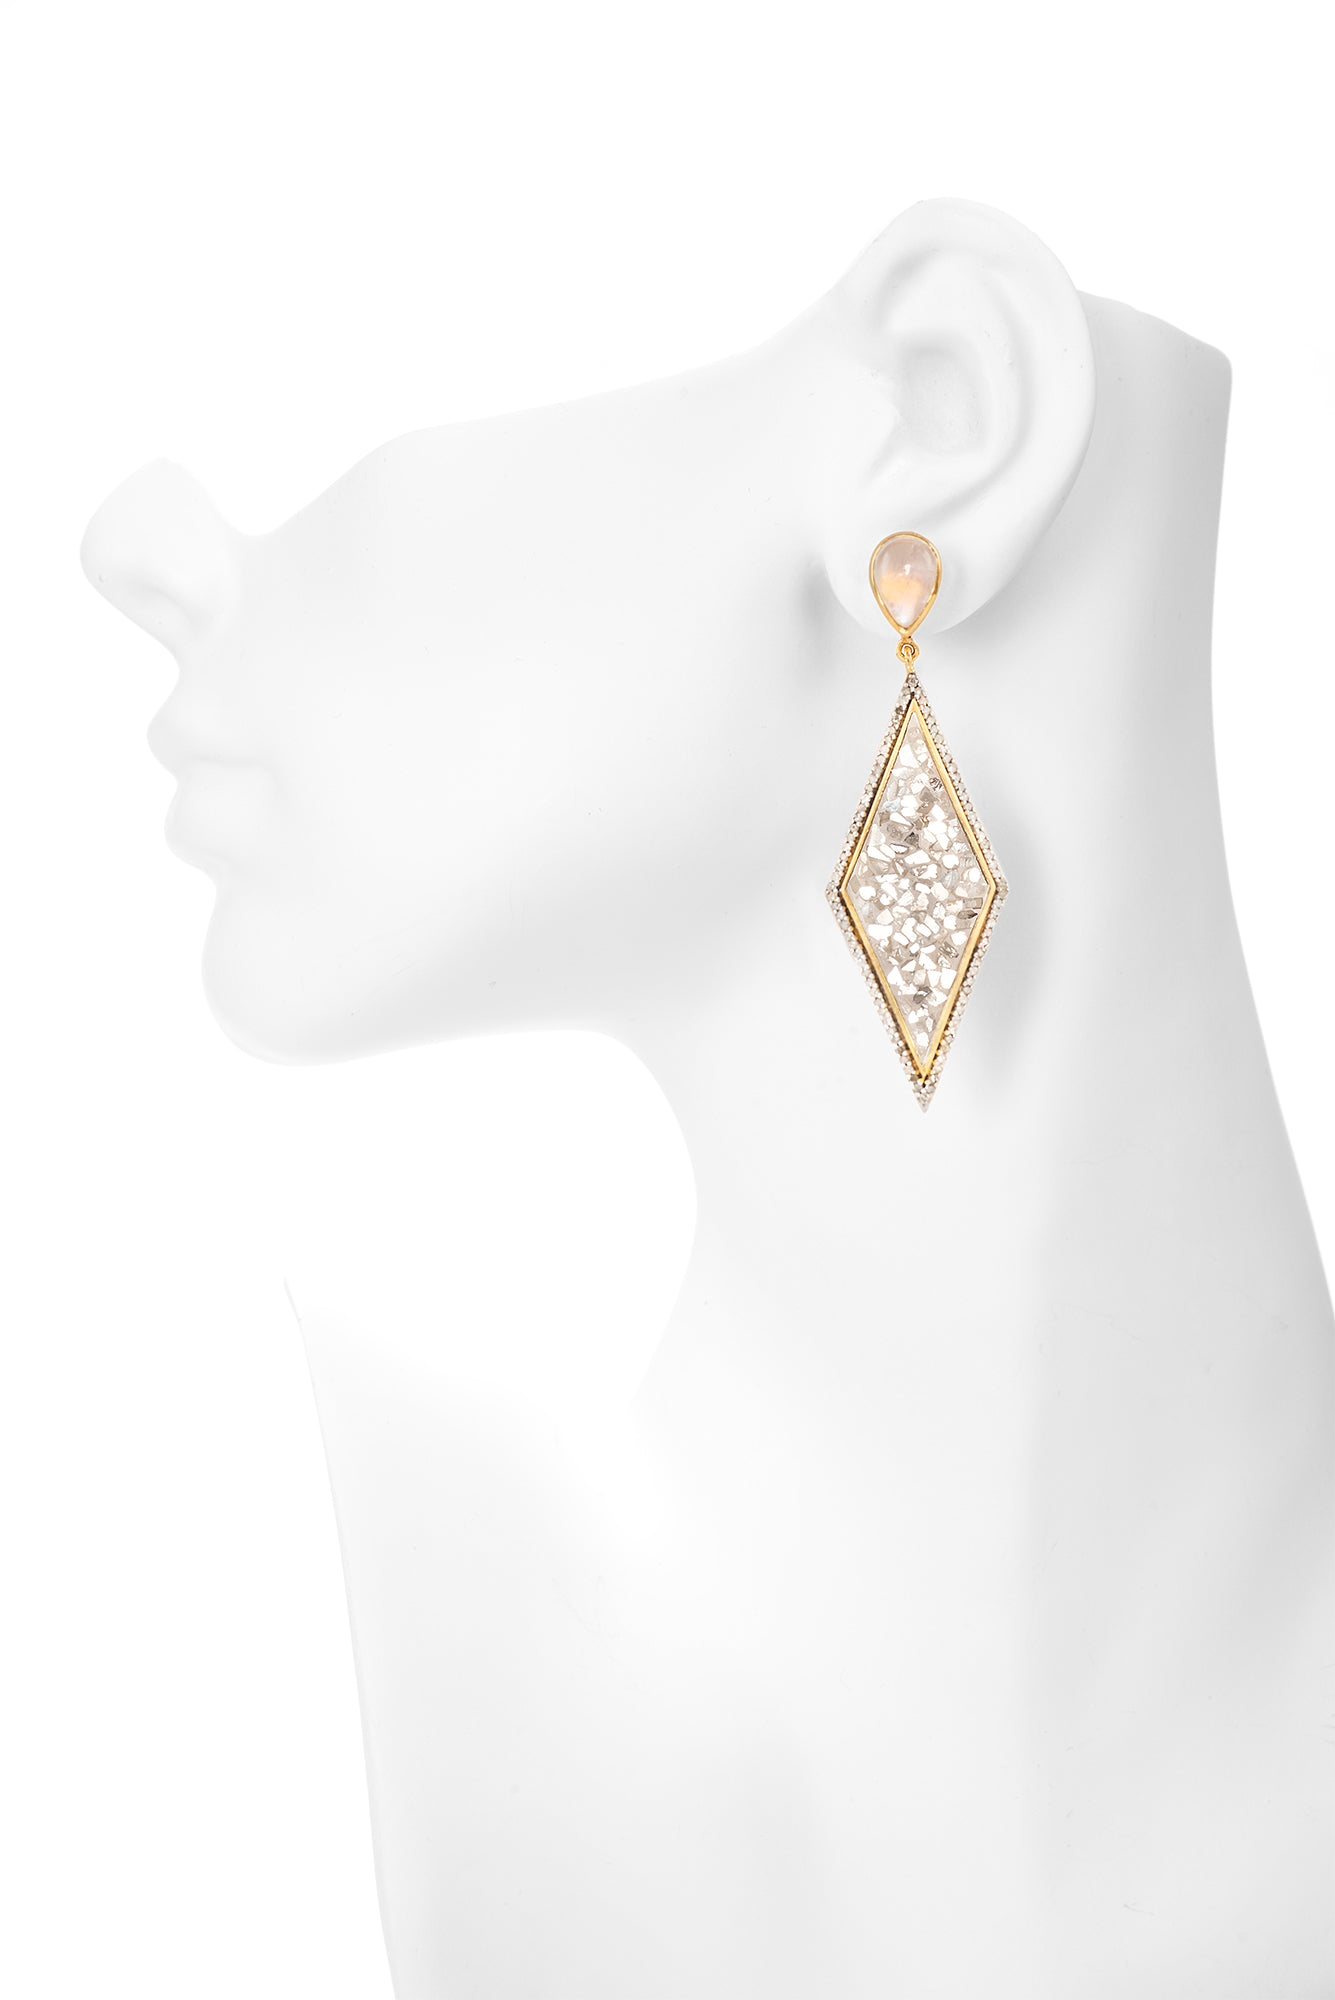 Agra Earrings